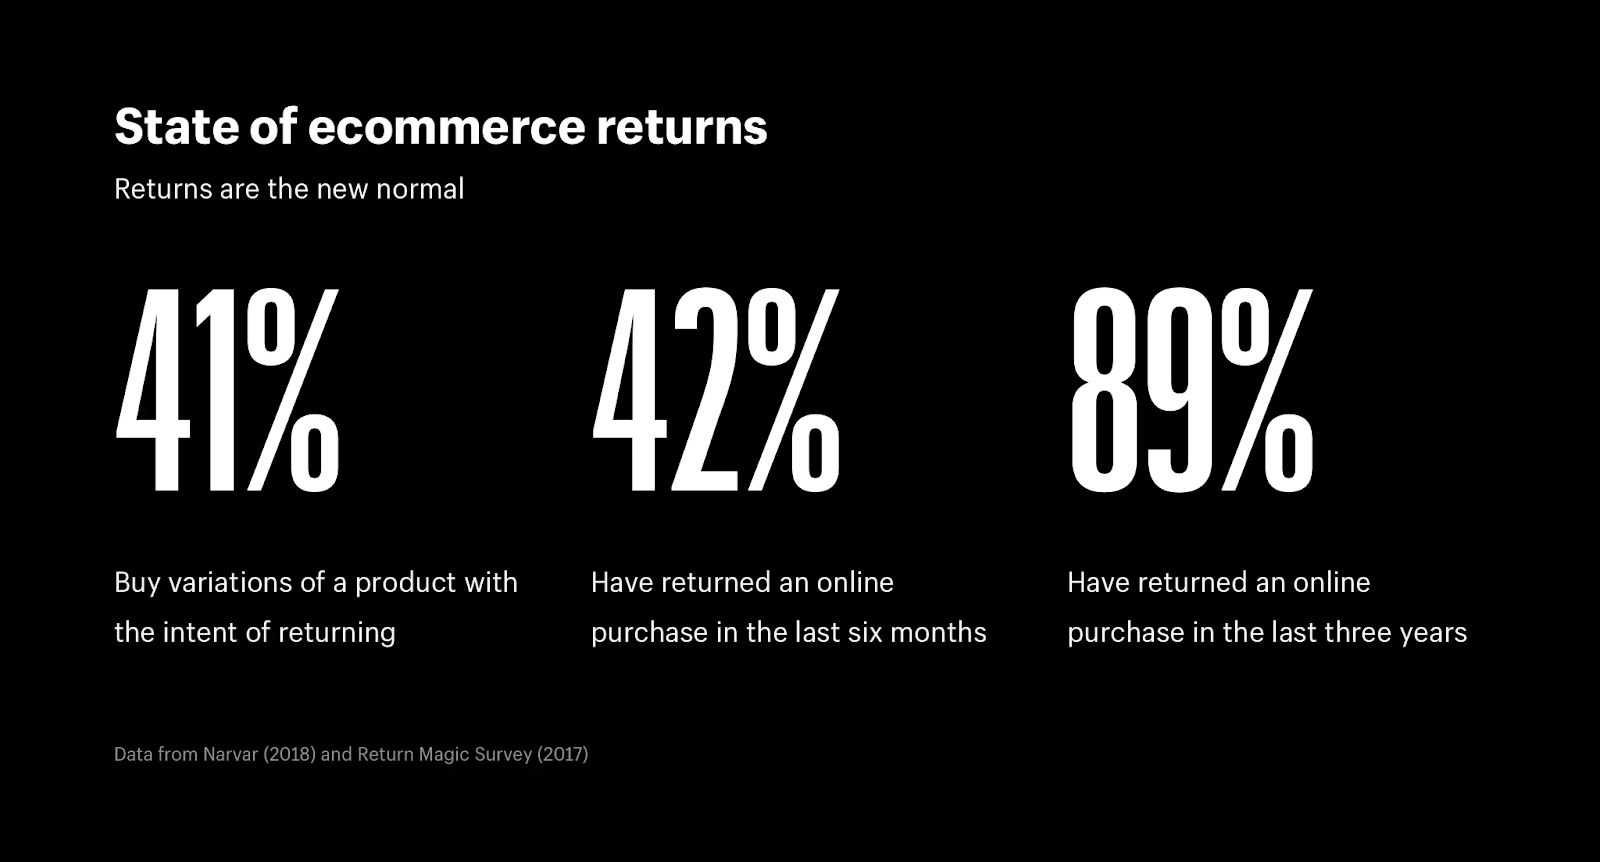 ecommerce returns trend 2020